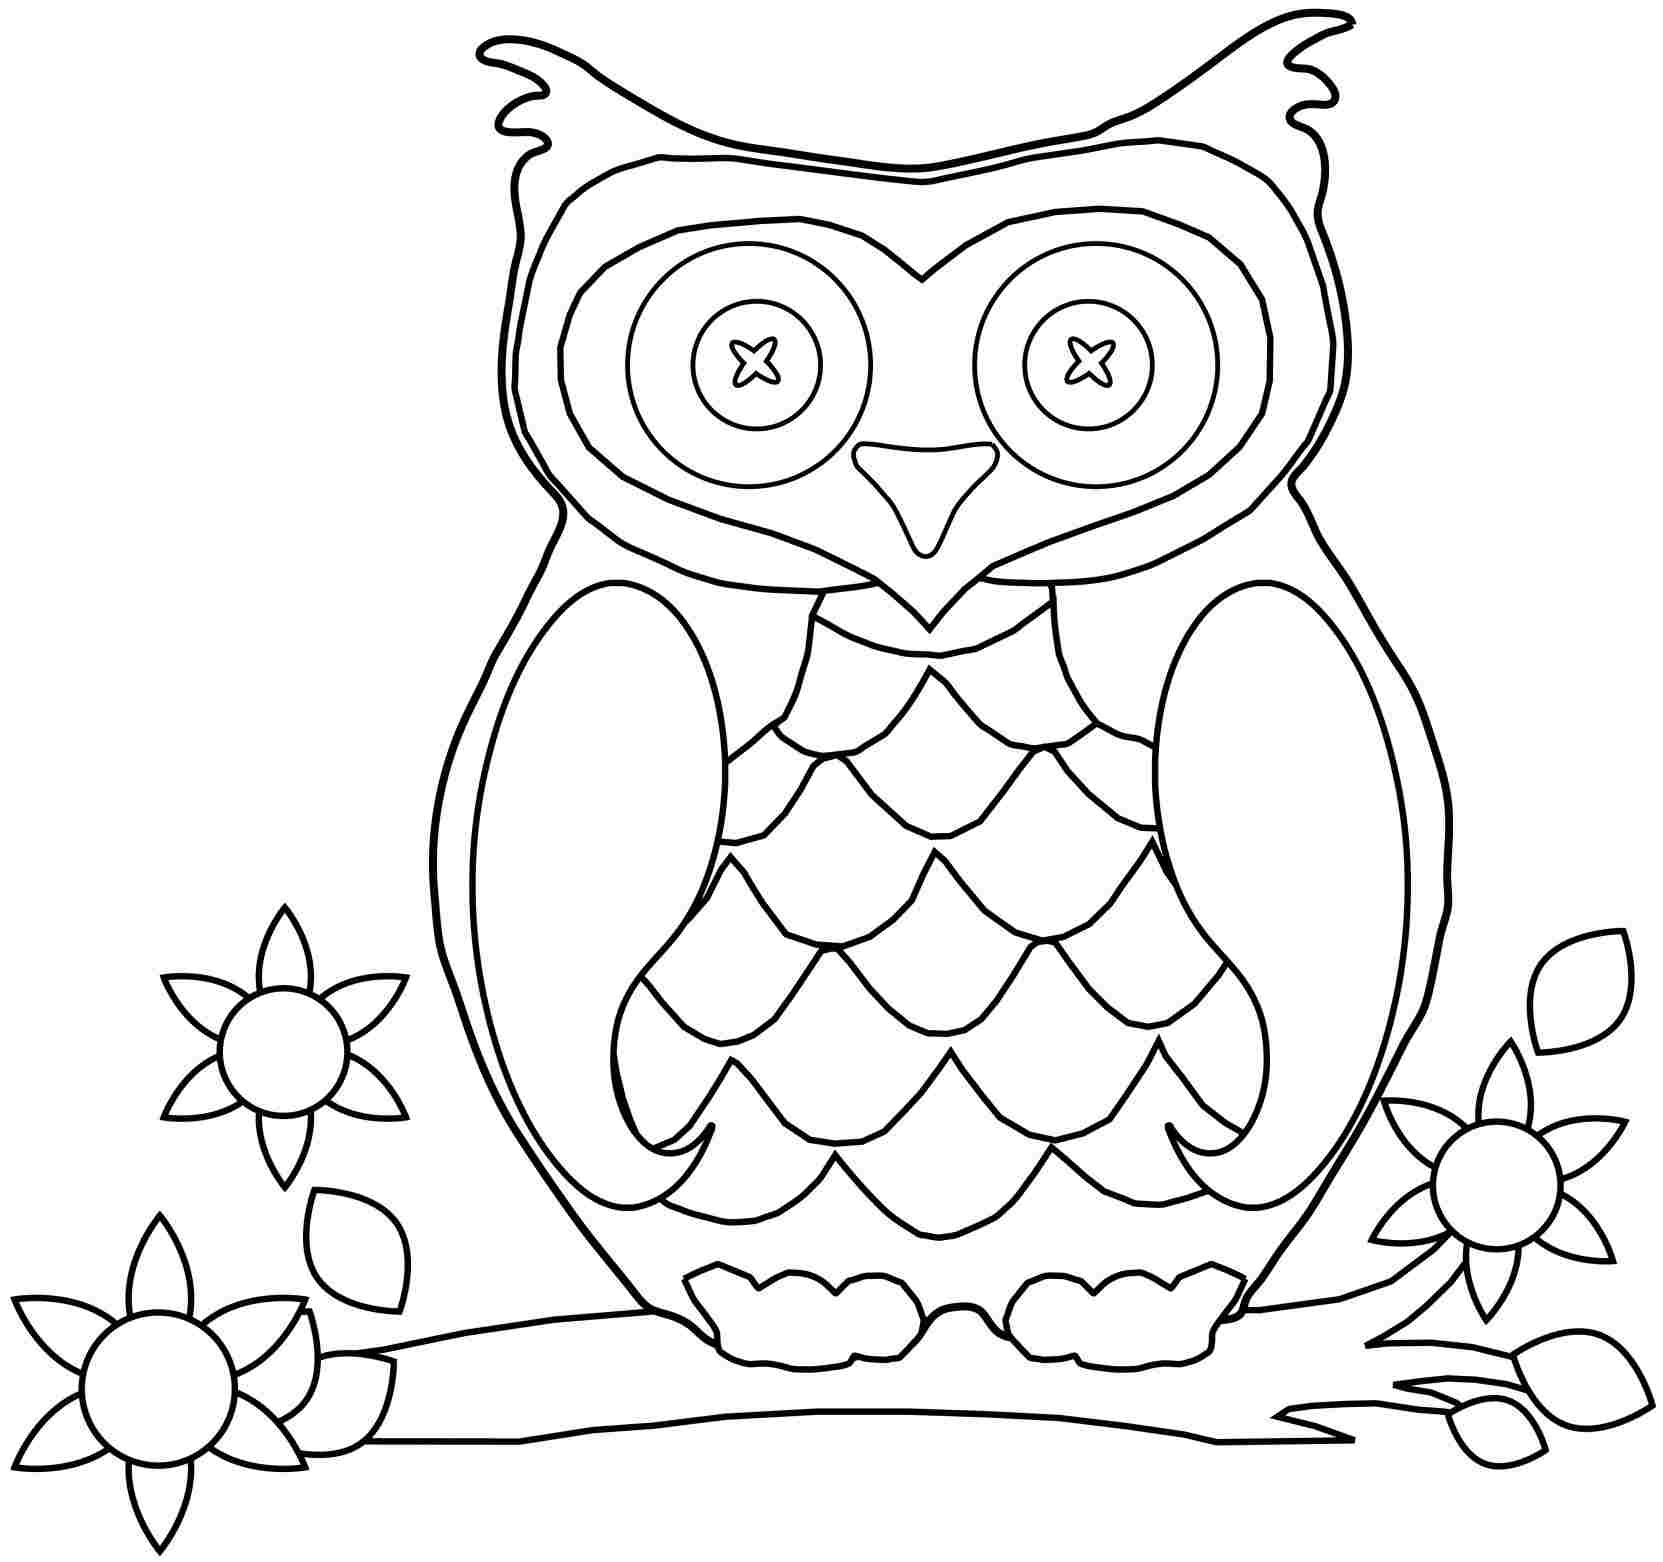 picture of owls to color owl coloring pages to print free printable online owl picture to color owls of